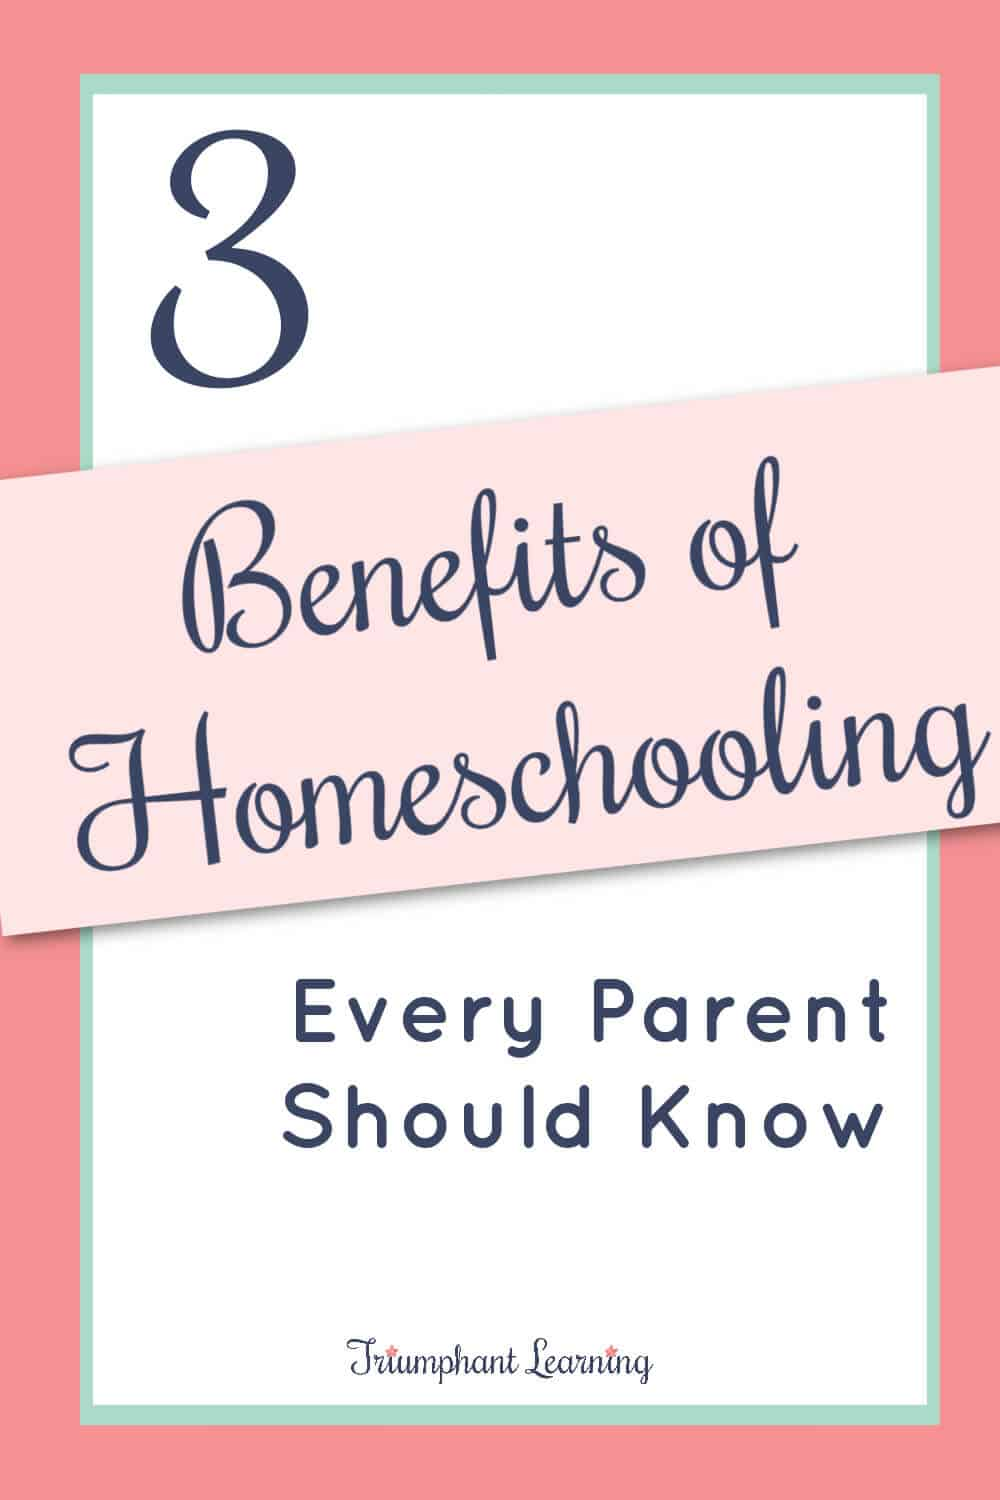 There are many benefits of homeschooling. Learn about three of those benefits and how you can decide if you should homeschool. via @TriLearning